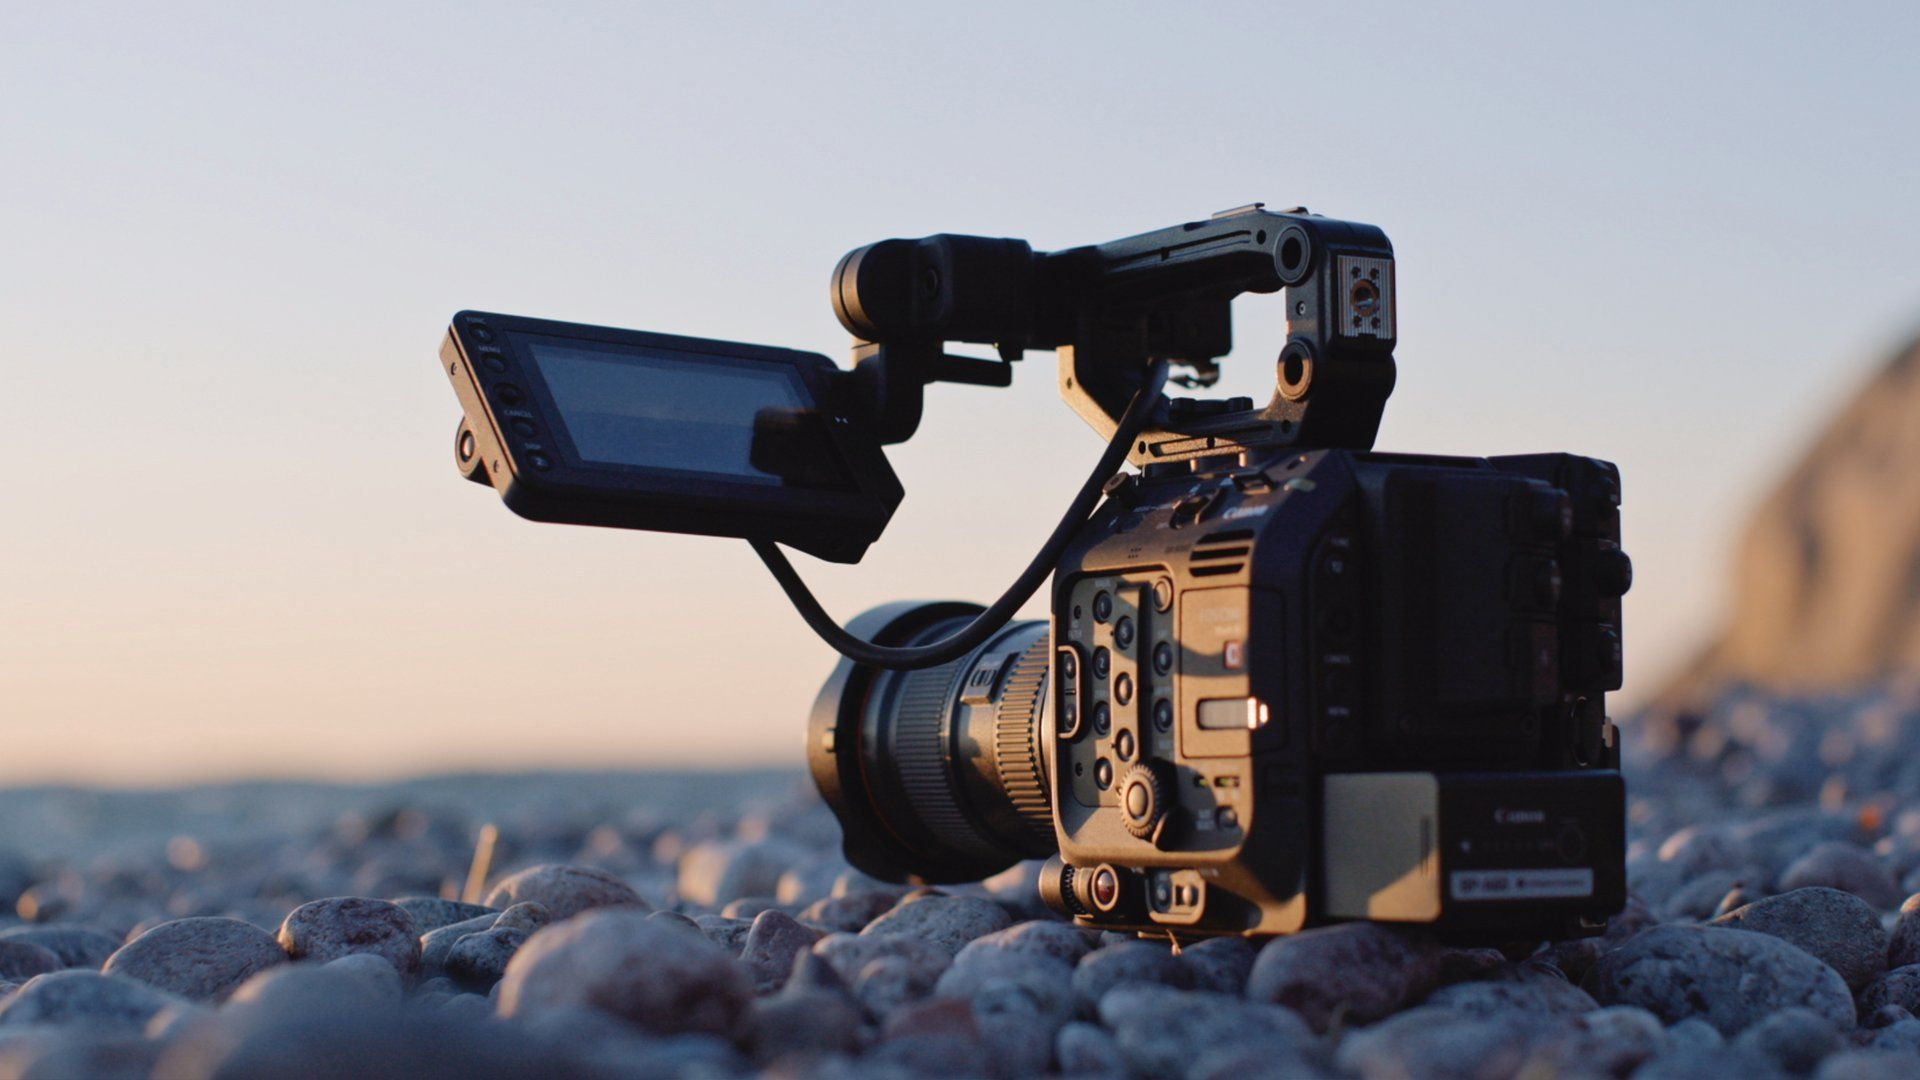 Canon Cinema EOS C300 Mark III on rocks